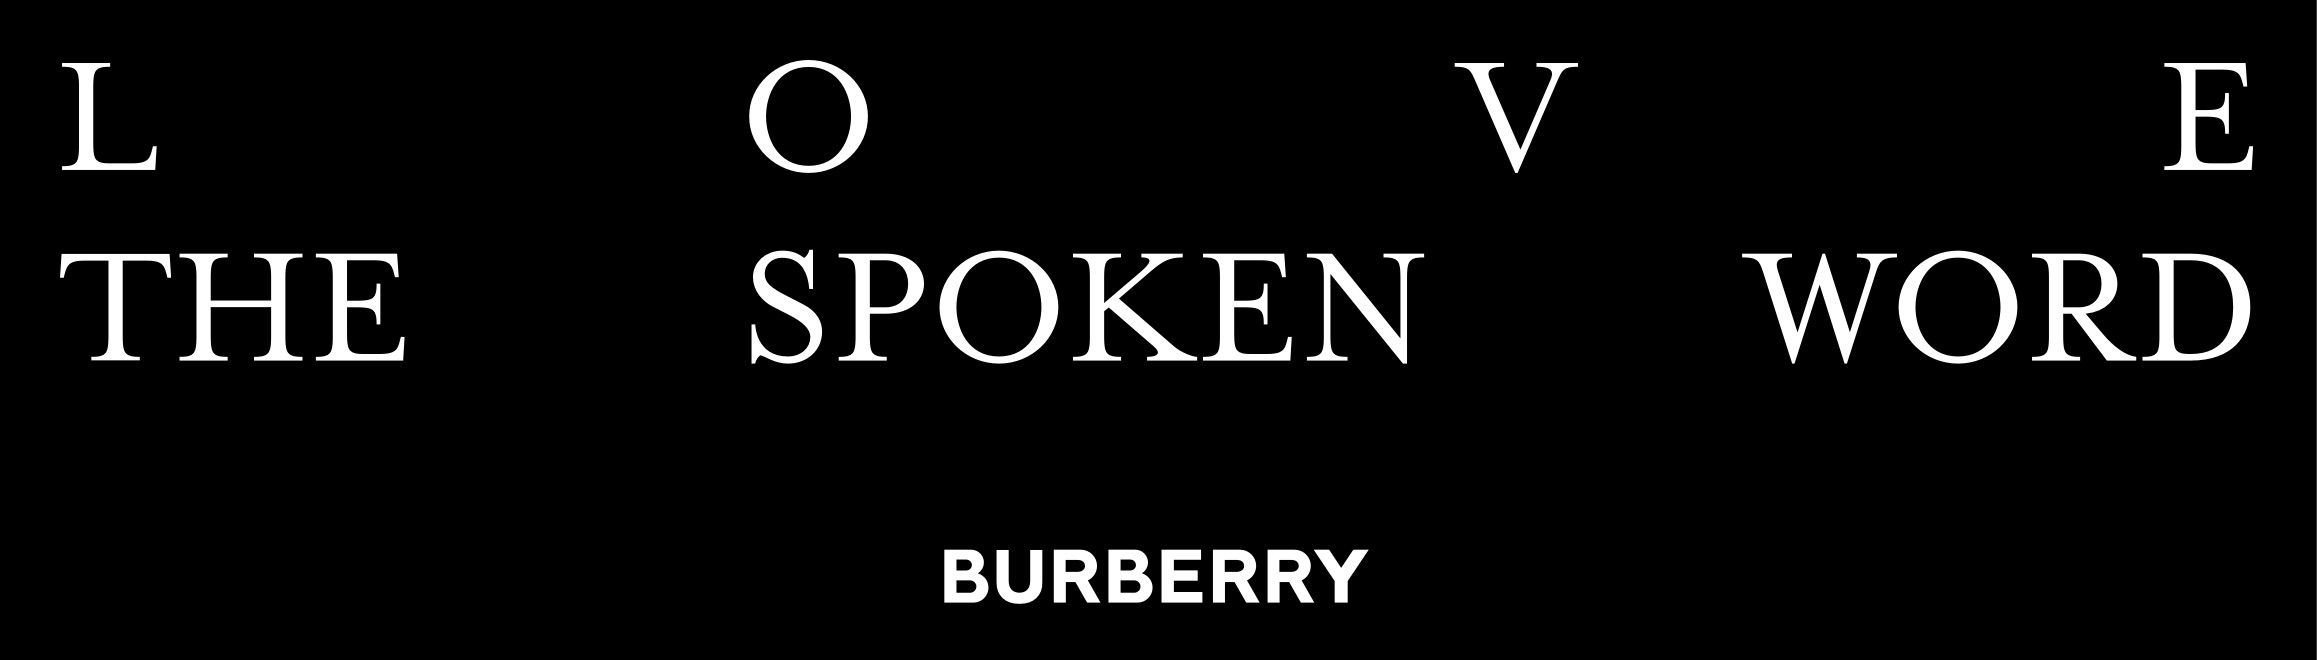 Burberry-campaign-id